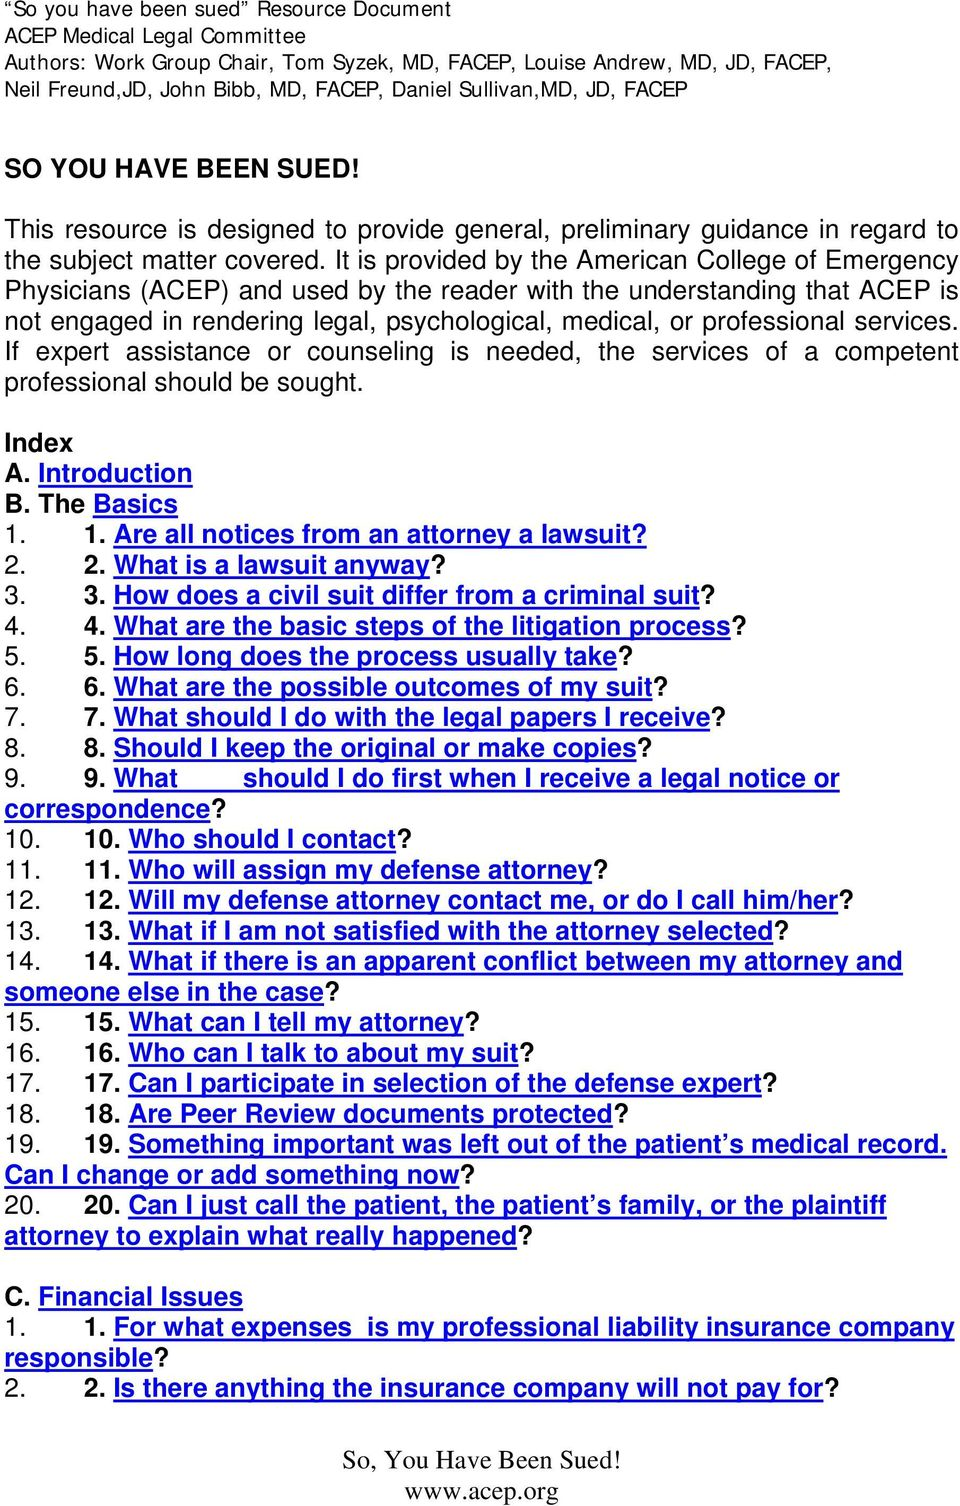 It is provided by the American College of Emergency Physicians (ACEP) and used by the reader with the understanding that ACEP is not engaged in rendering legal, psychological, medical, or